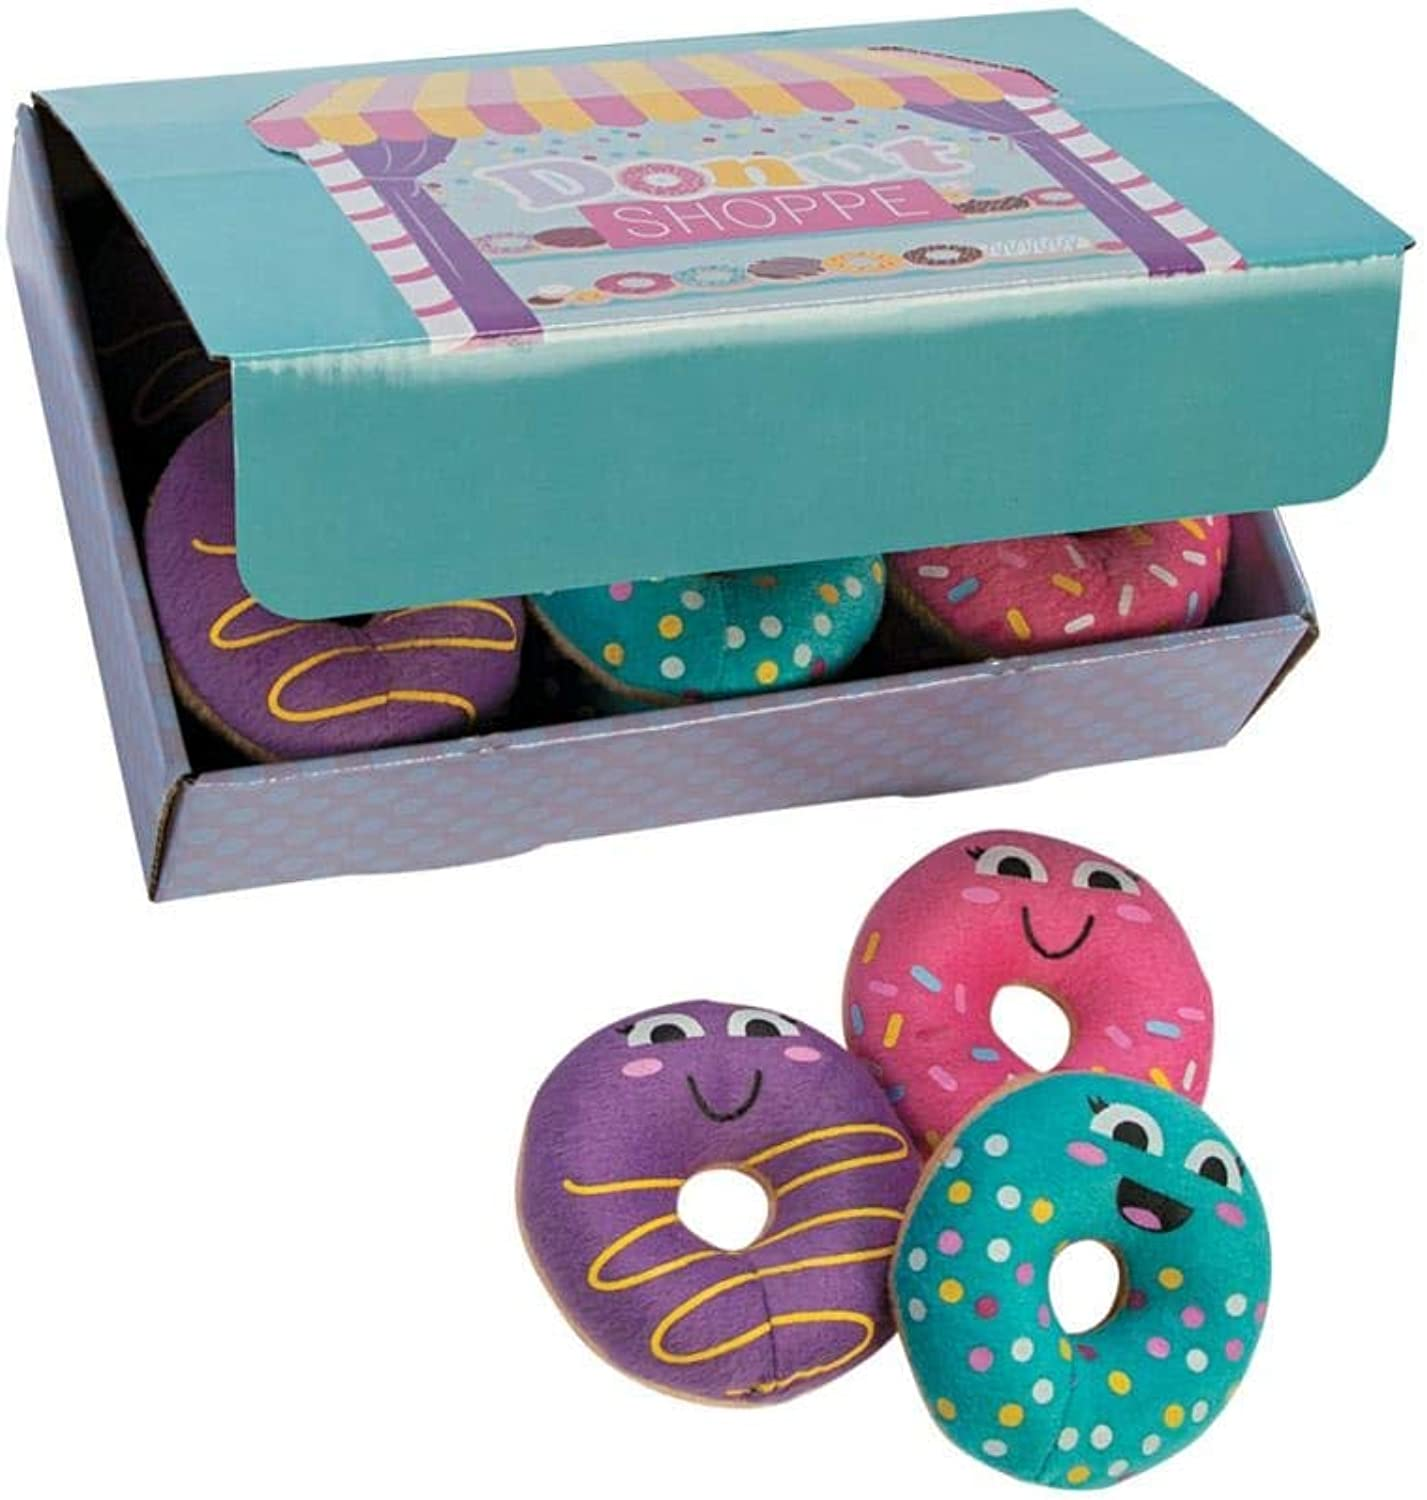 Box of 12 Plush Donut Party Donuts with Donut Shop Box Included